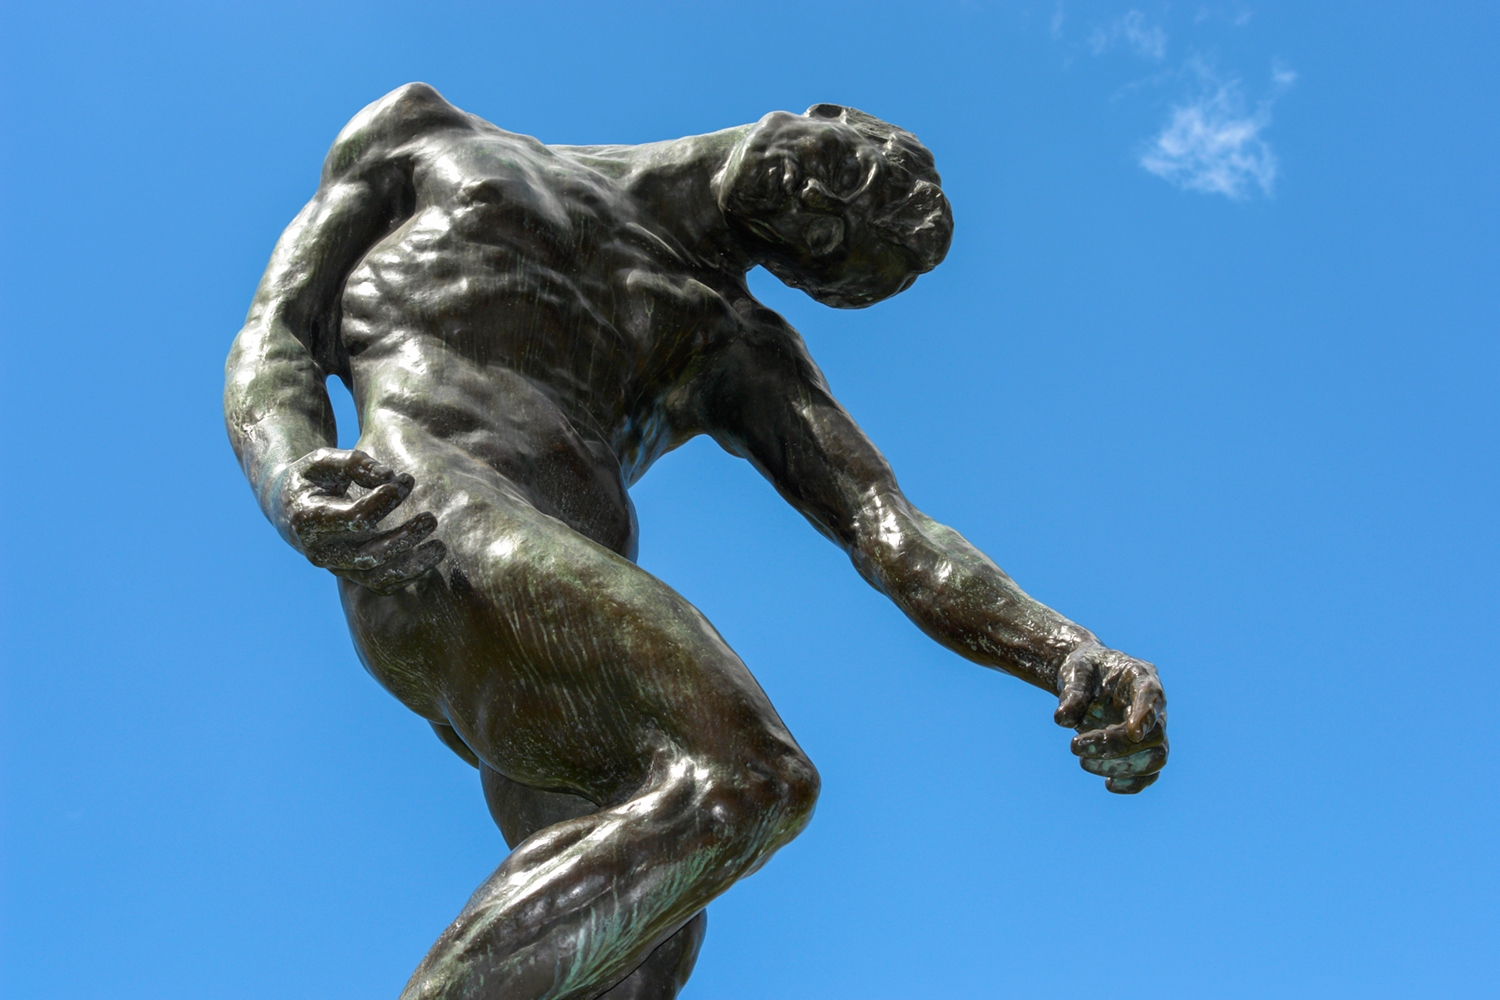 Low angle photography - statue looking downwards